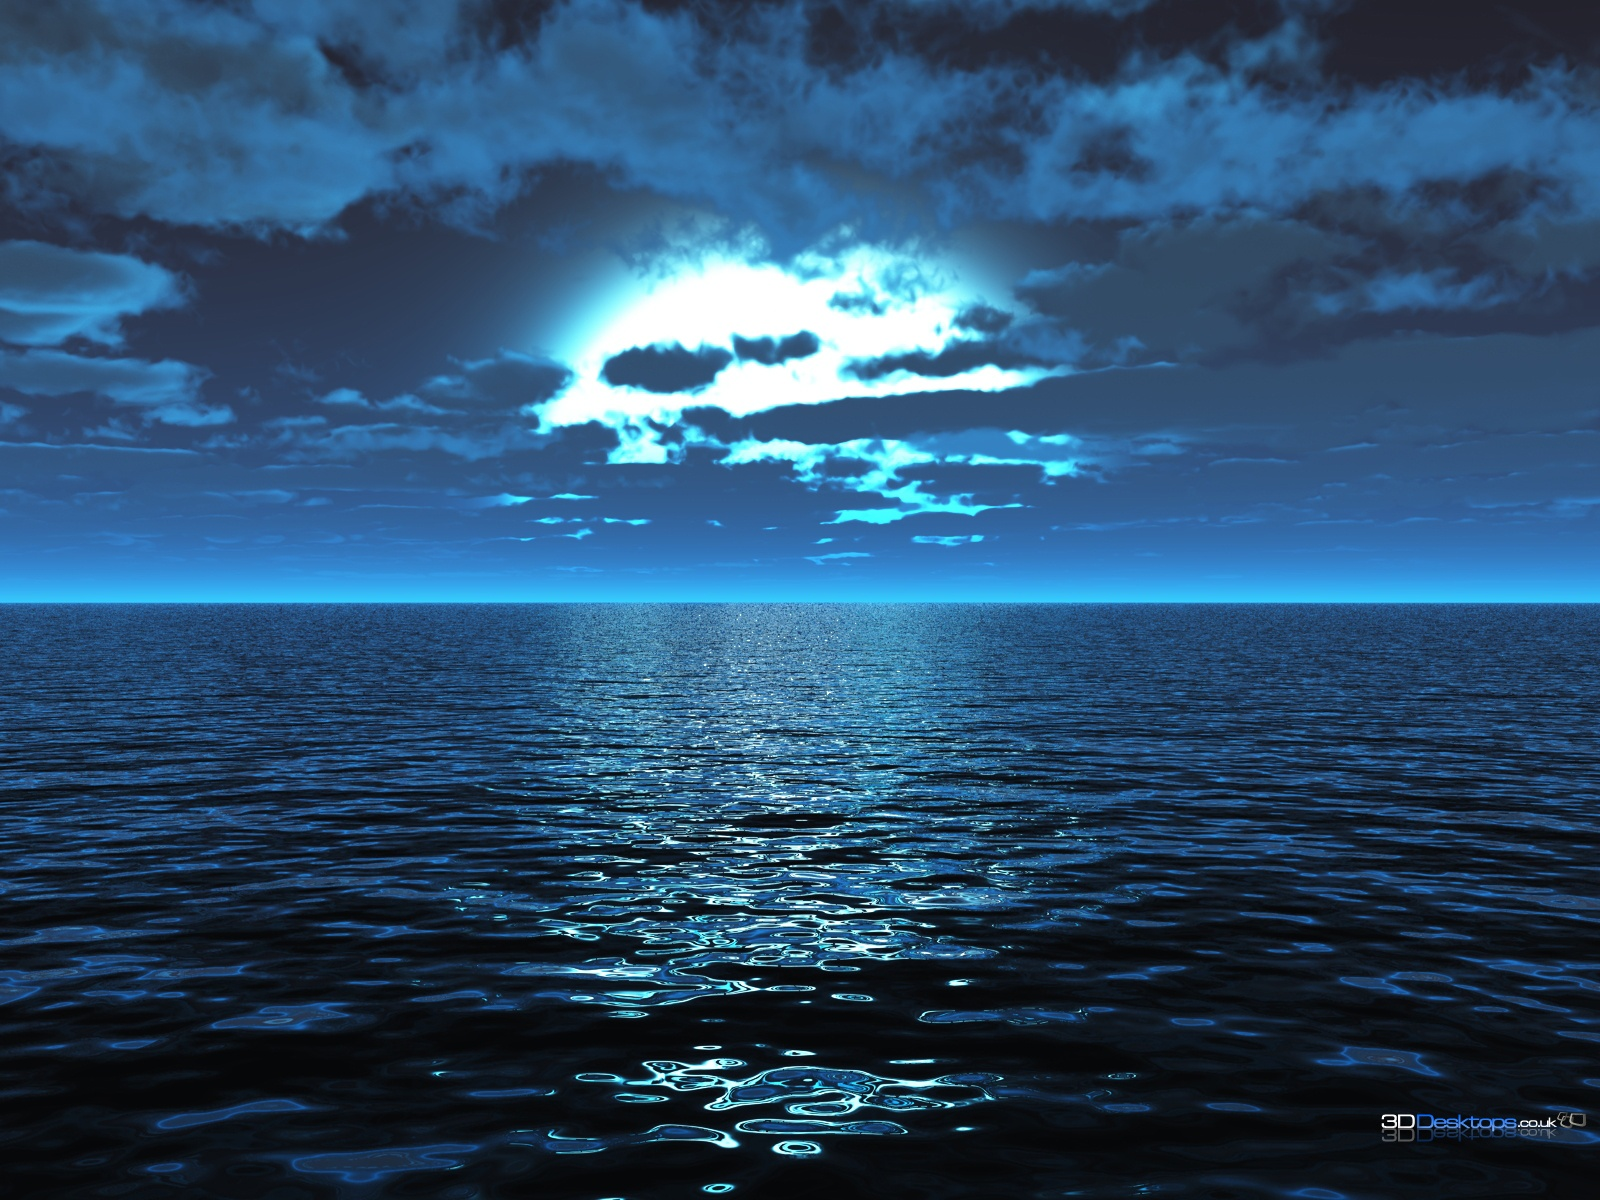 3d wallpaper sub result 24 - Ocean pictures for desktop background ...